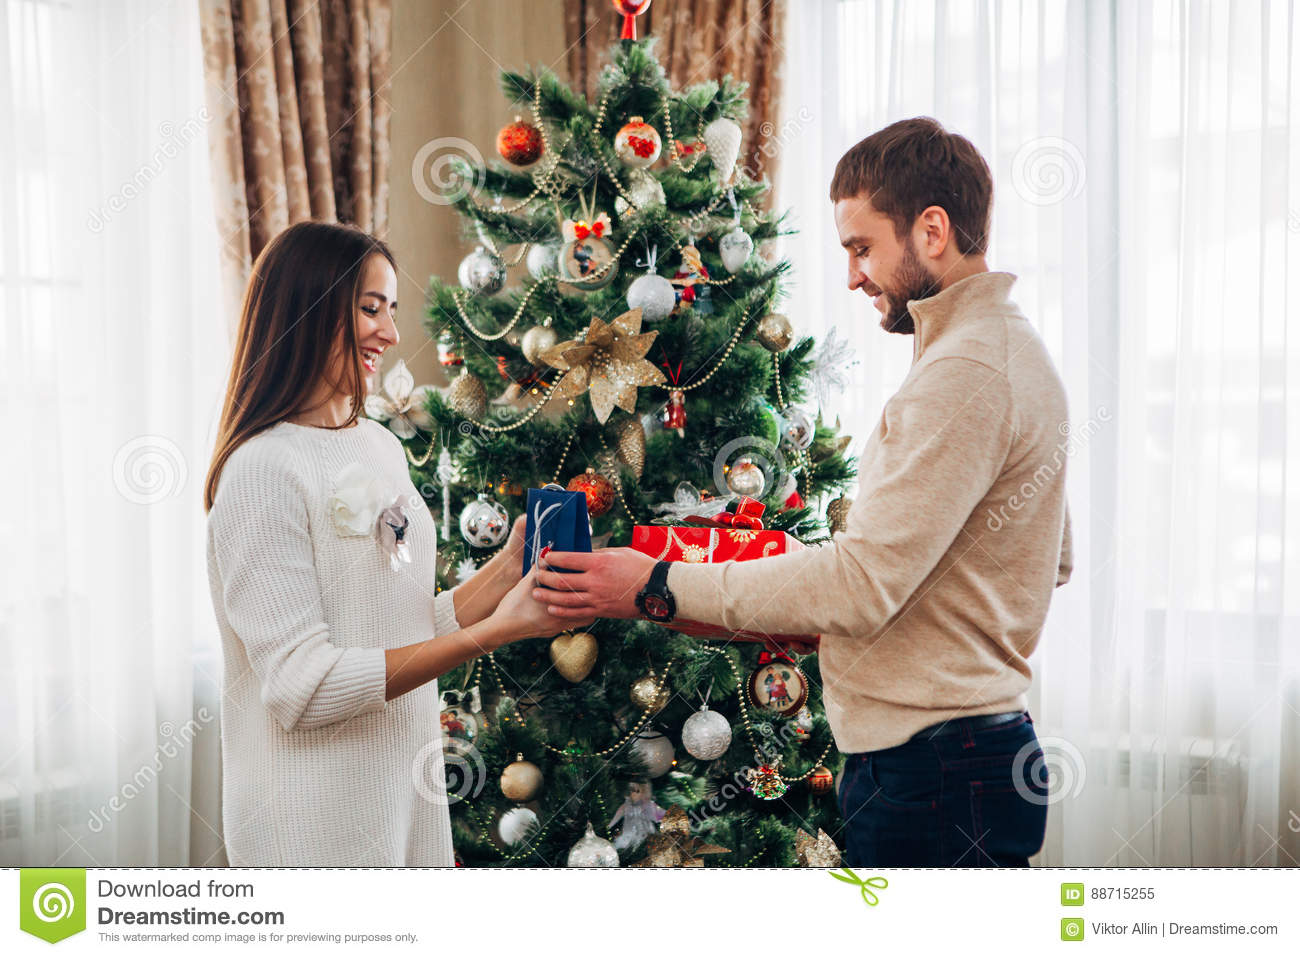 The Husband Gives Christmas Gift To His Wife Stock Image - Image of ...